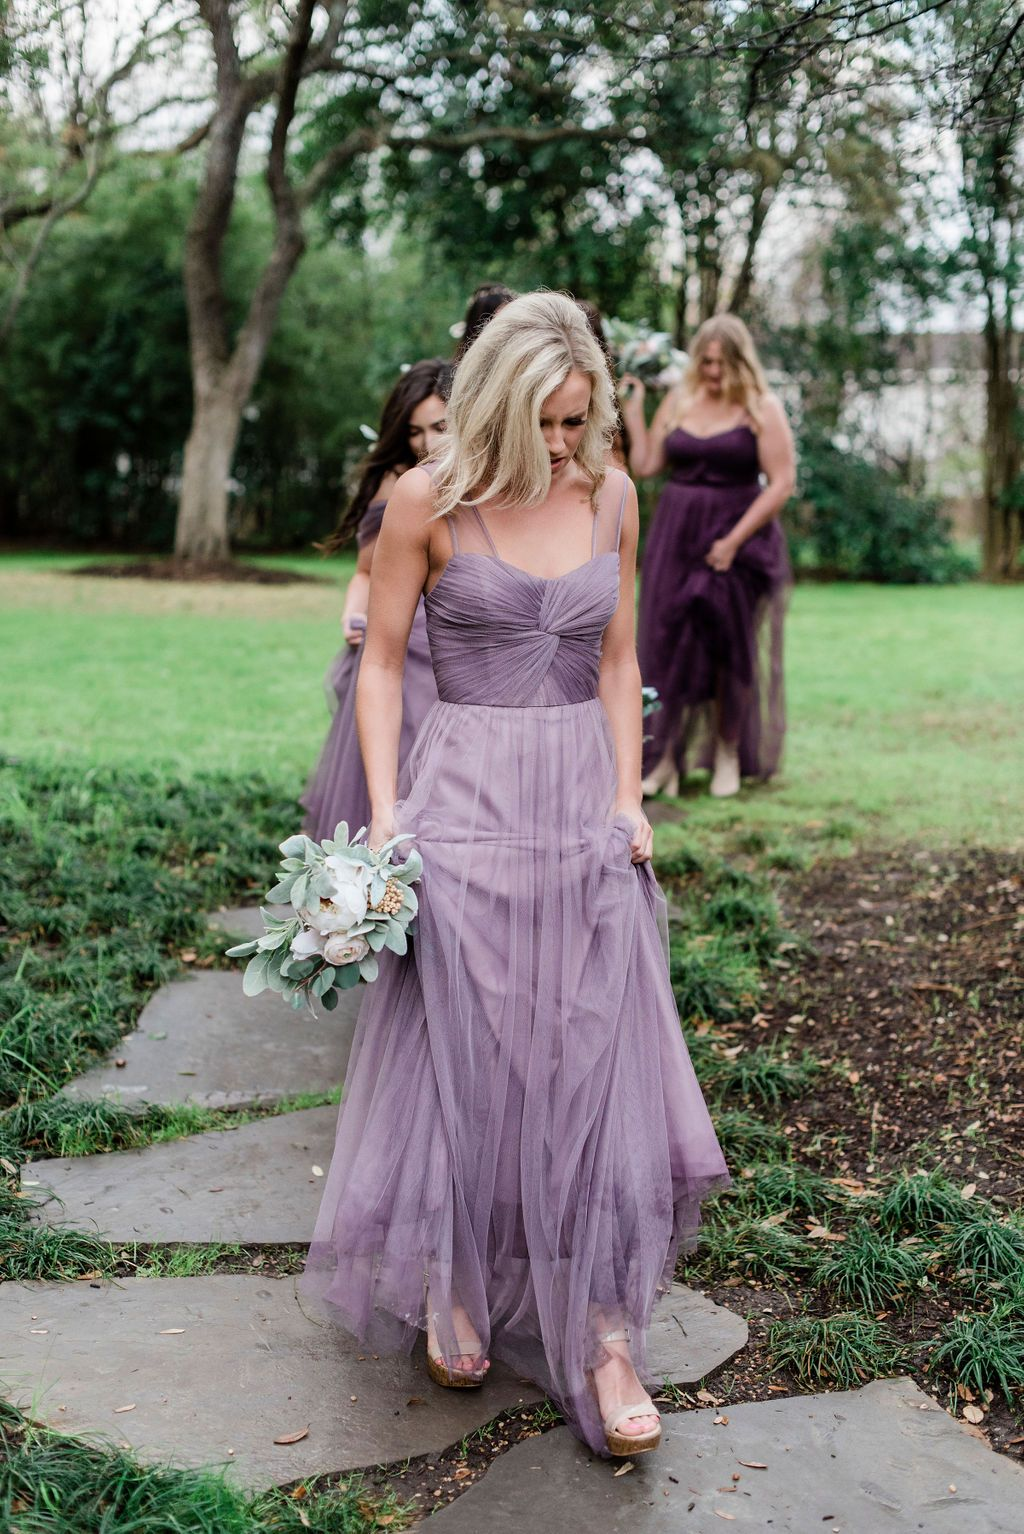 Create The Romantic Wedding Of Your Dreams Starting With Our Amelia Wedding Gown Lilac Bridesmaid Dresses Bridesmaid Dresses Boho Lavender Bridesmaid Dresses [ 1534 x 1024 Pixel ]